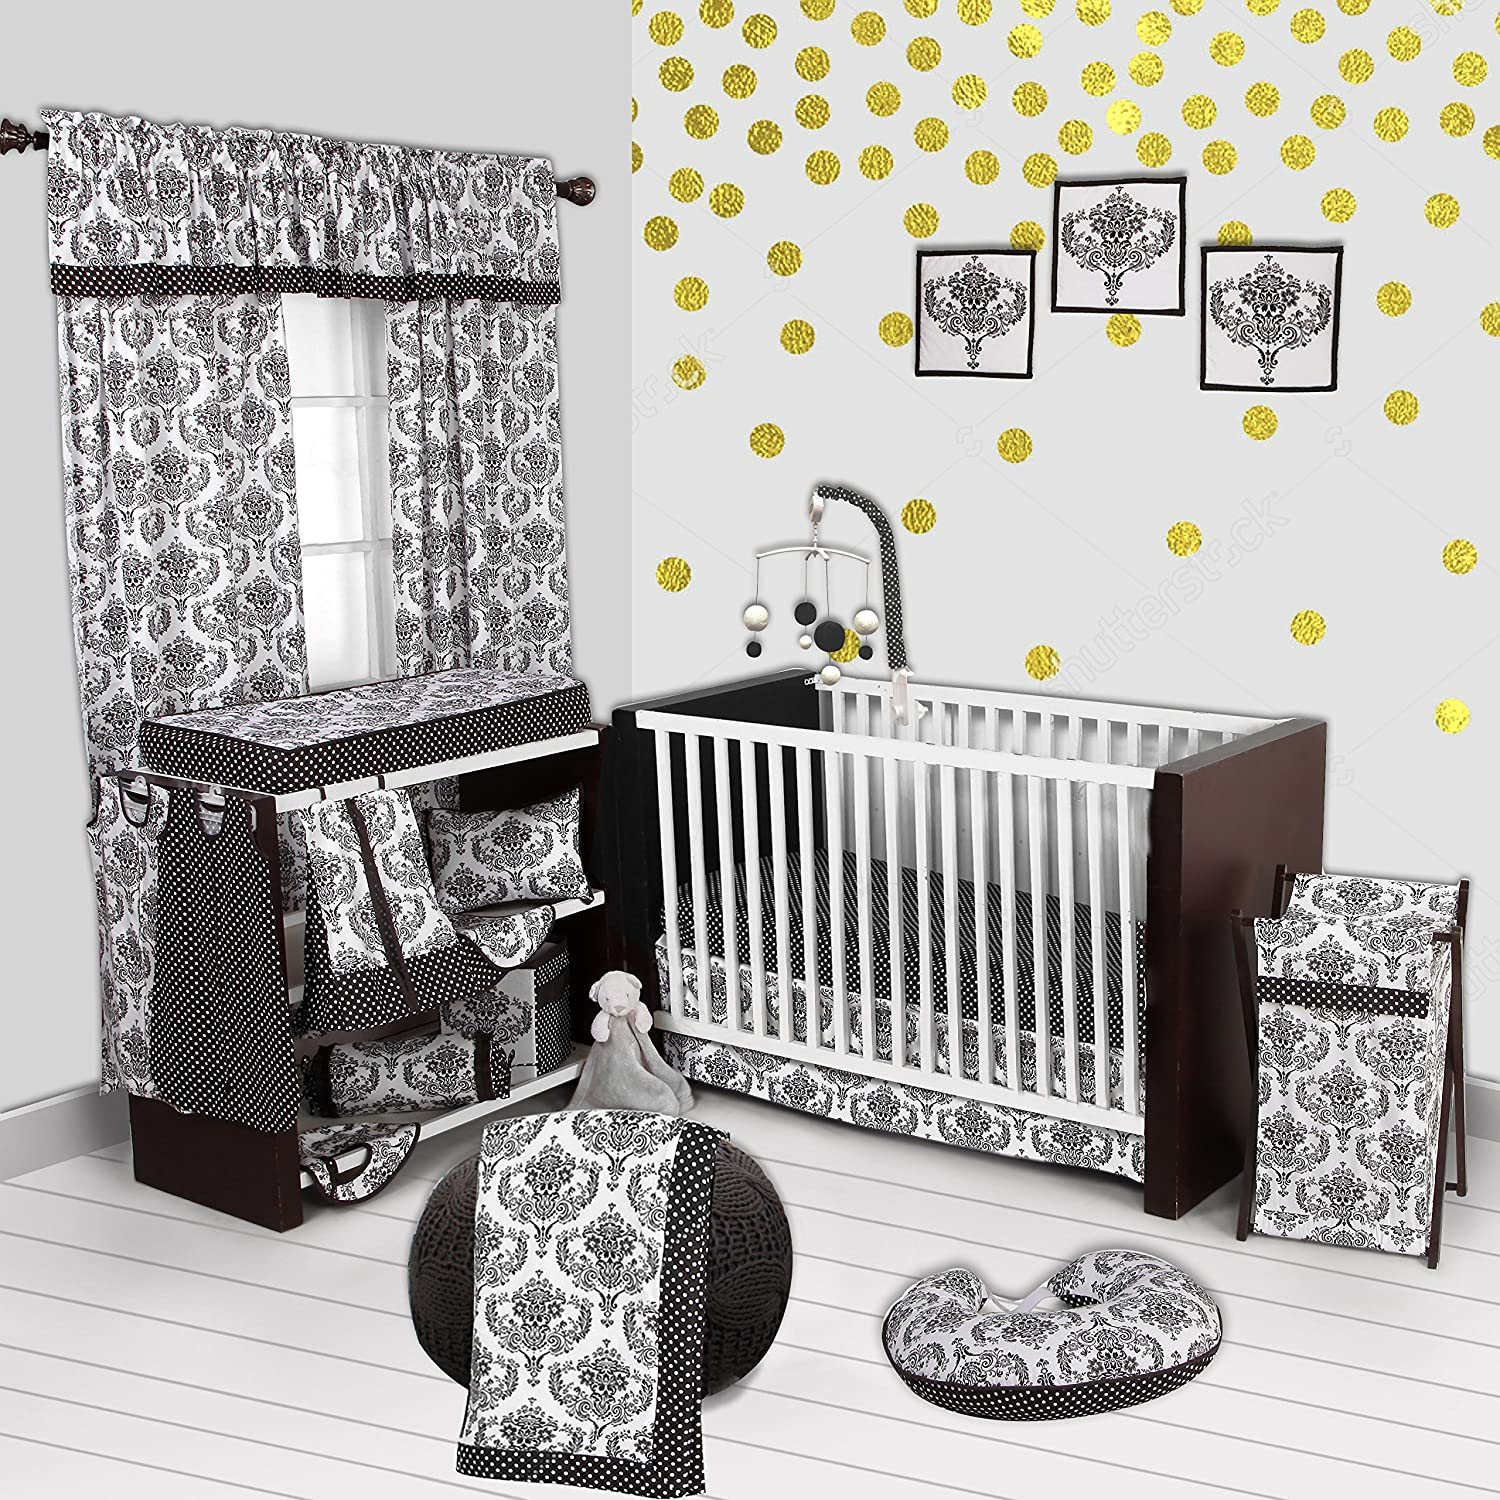 Bacati - Classic Damask White/Black 10 Pc Crib Set with 2 Crib Sheets (Bumper Pad not Included) 100 Percent Cotton.